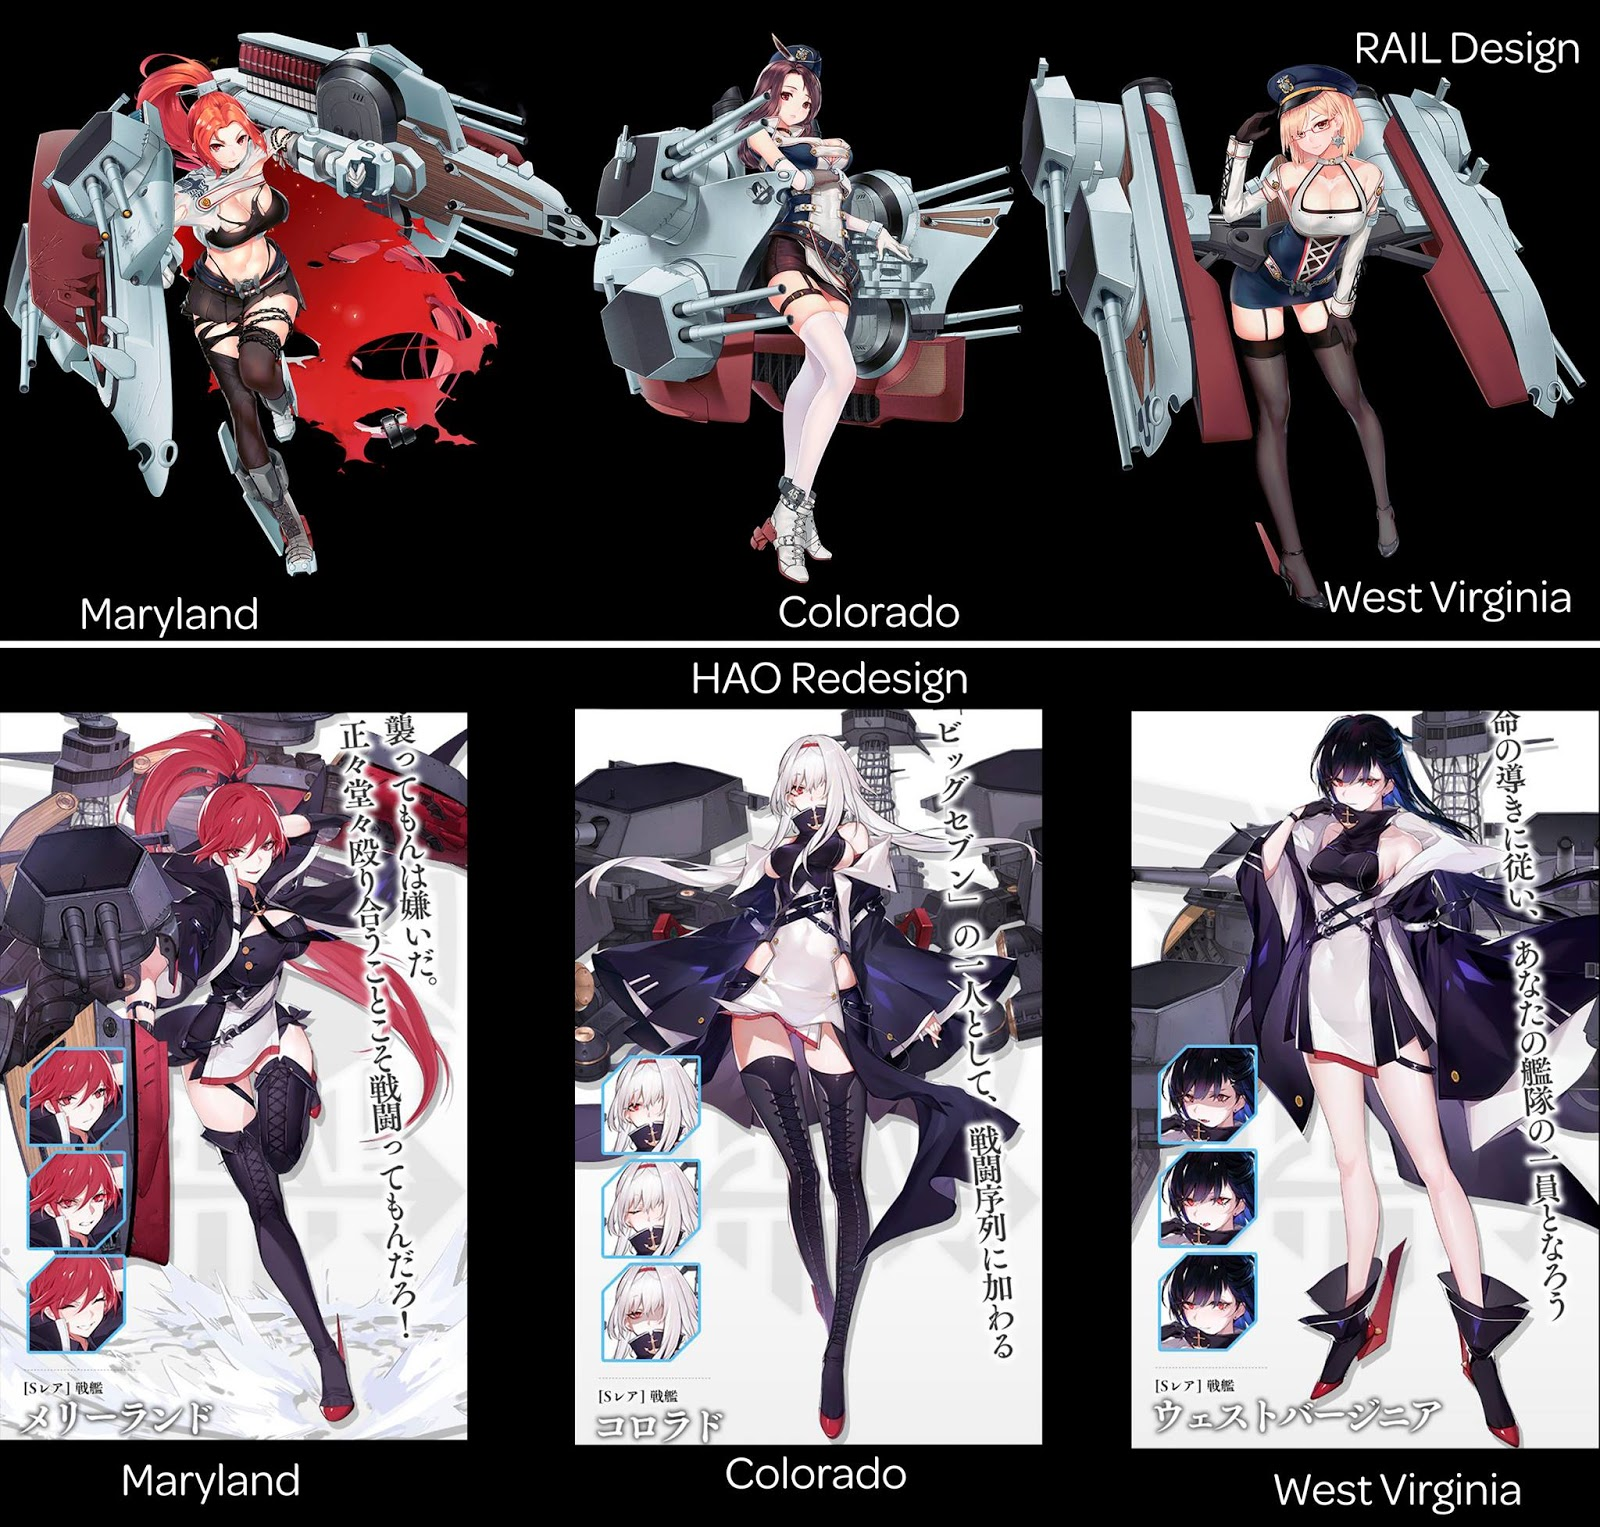 Azur Lane - Why Fallen Wings Event Been Delayed and Redesign Happen